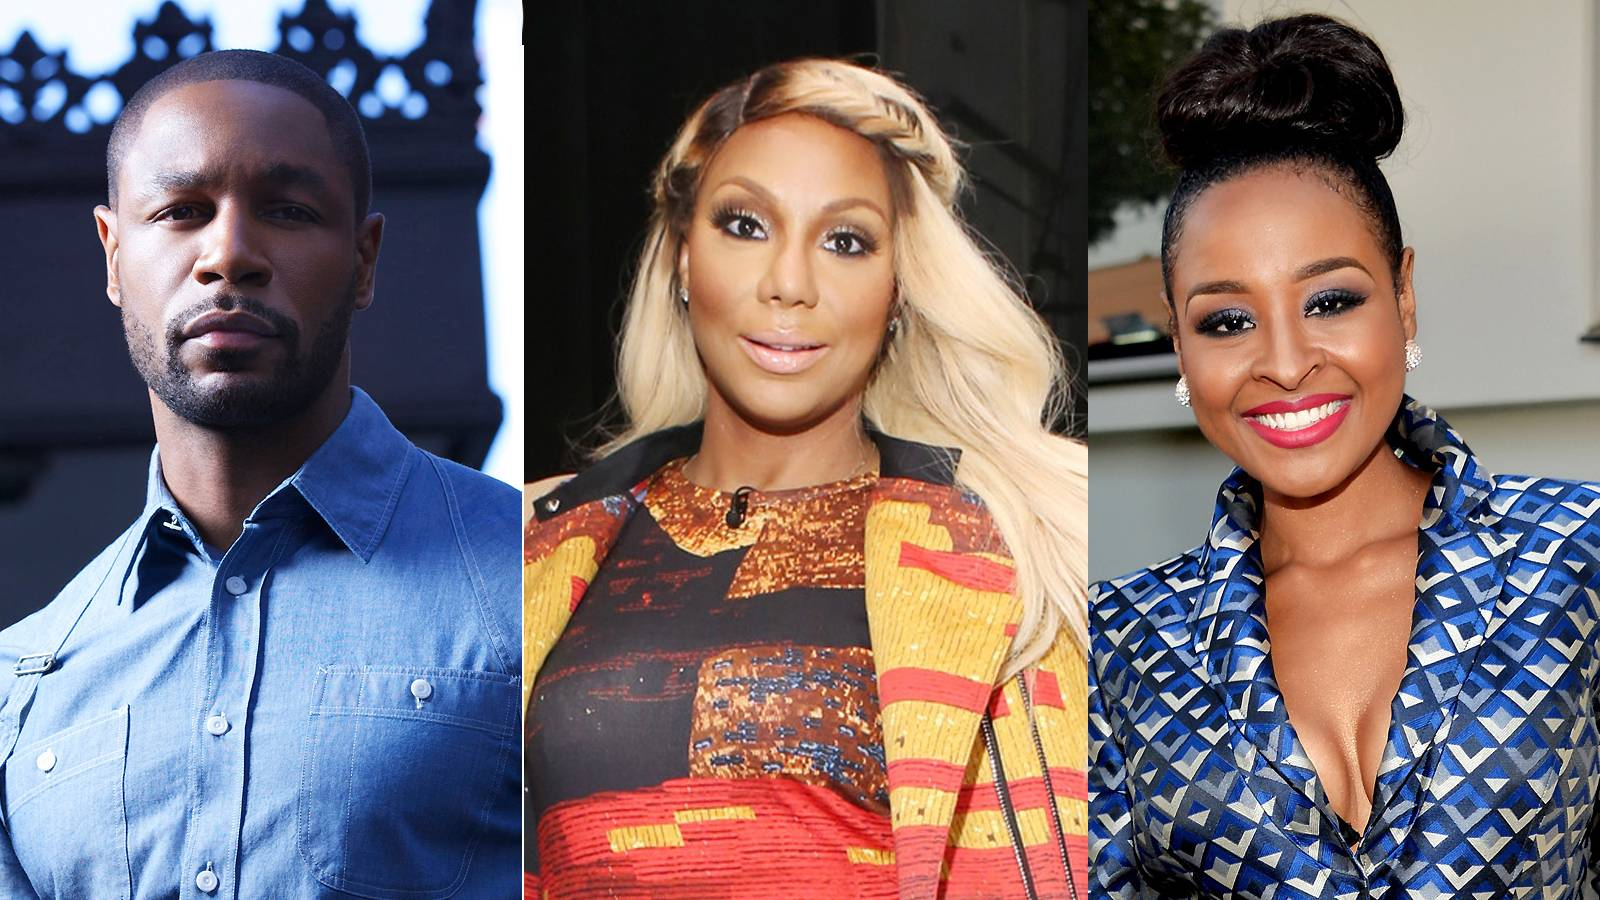 Red Carpet Hosts - Ahead of the 2014 Soul Train Awards, Tank, Tamar Braxton and Janell Snowden will host the star-studded red carpet, where the stars are sure to be dressed to nines and ready for the biggest night in soul music.